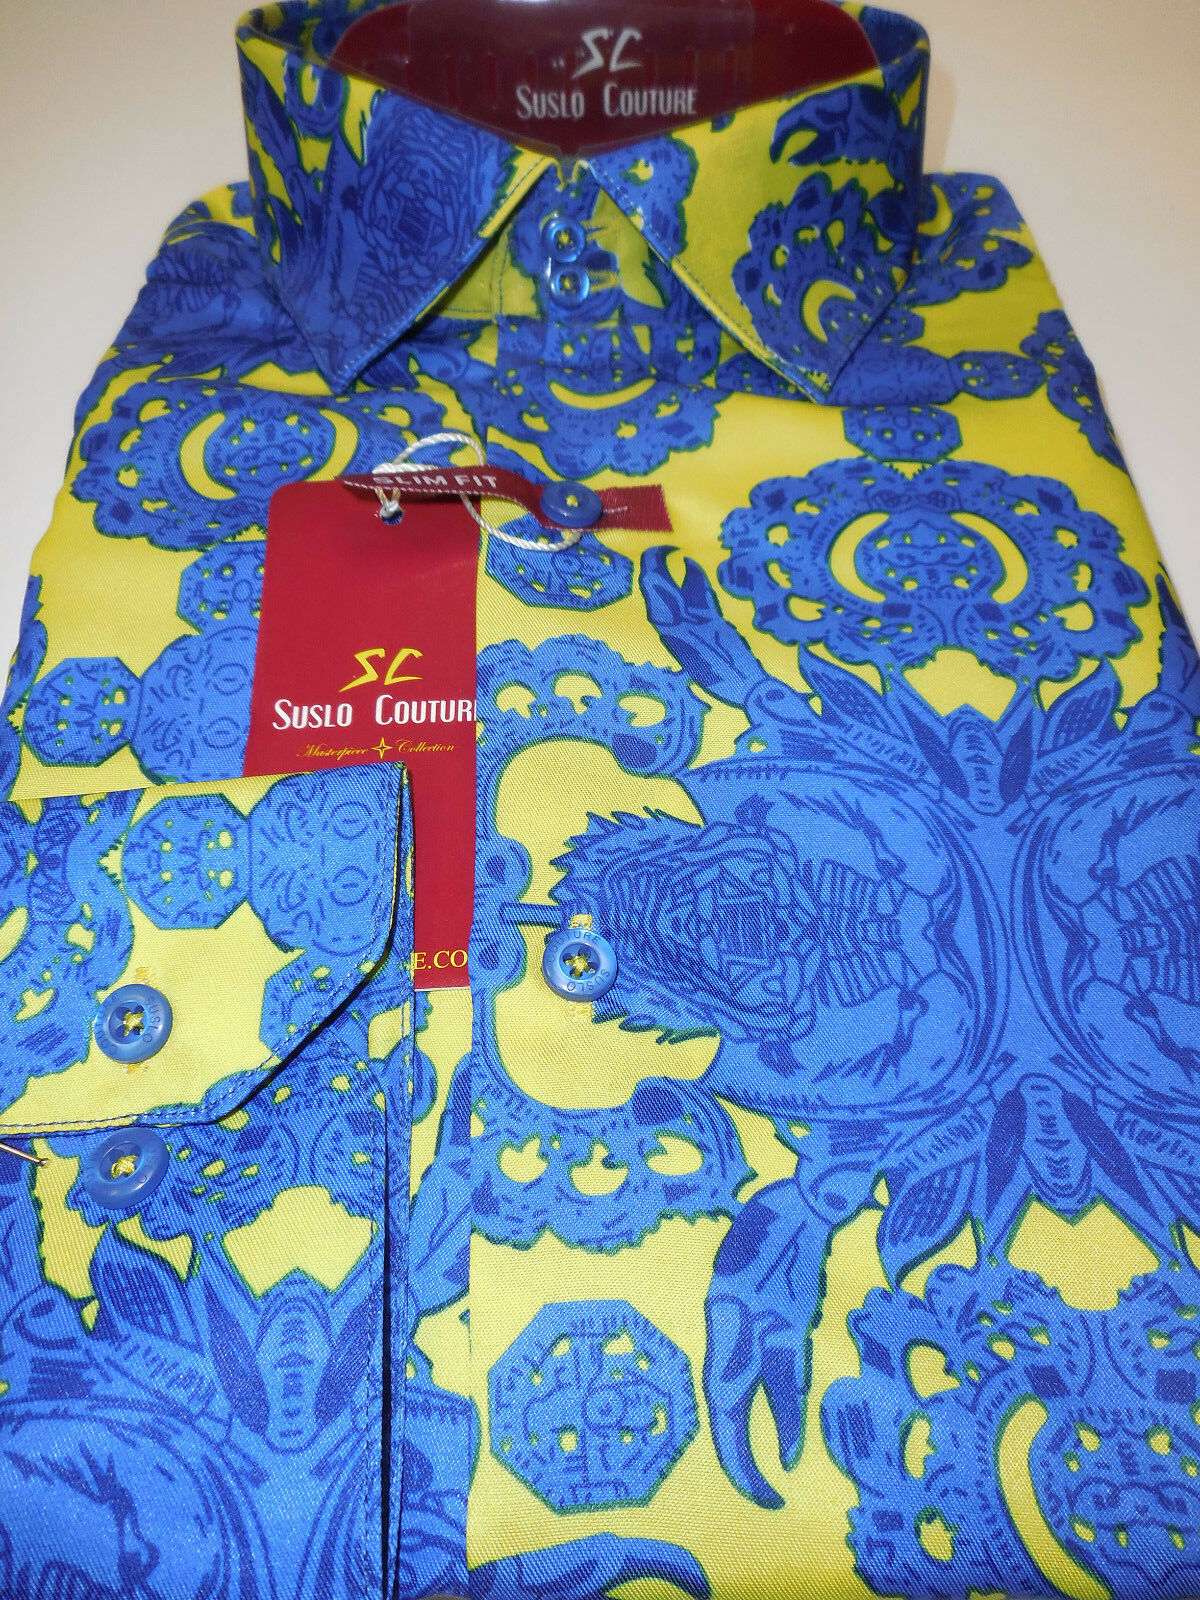 Mens Royal bluee & Neon Medallion Modern Fit Clubbing Shirt Suslo Couture M10